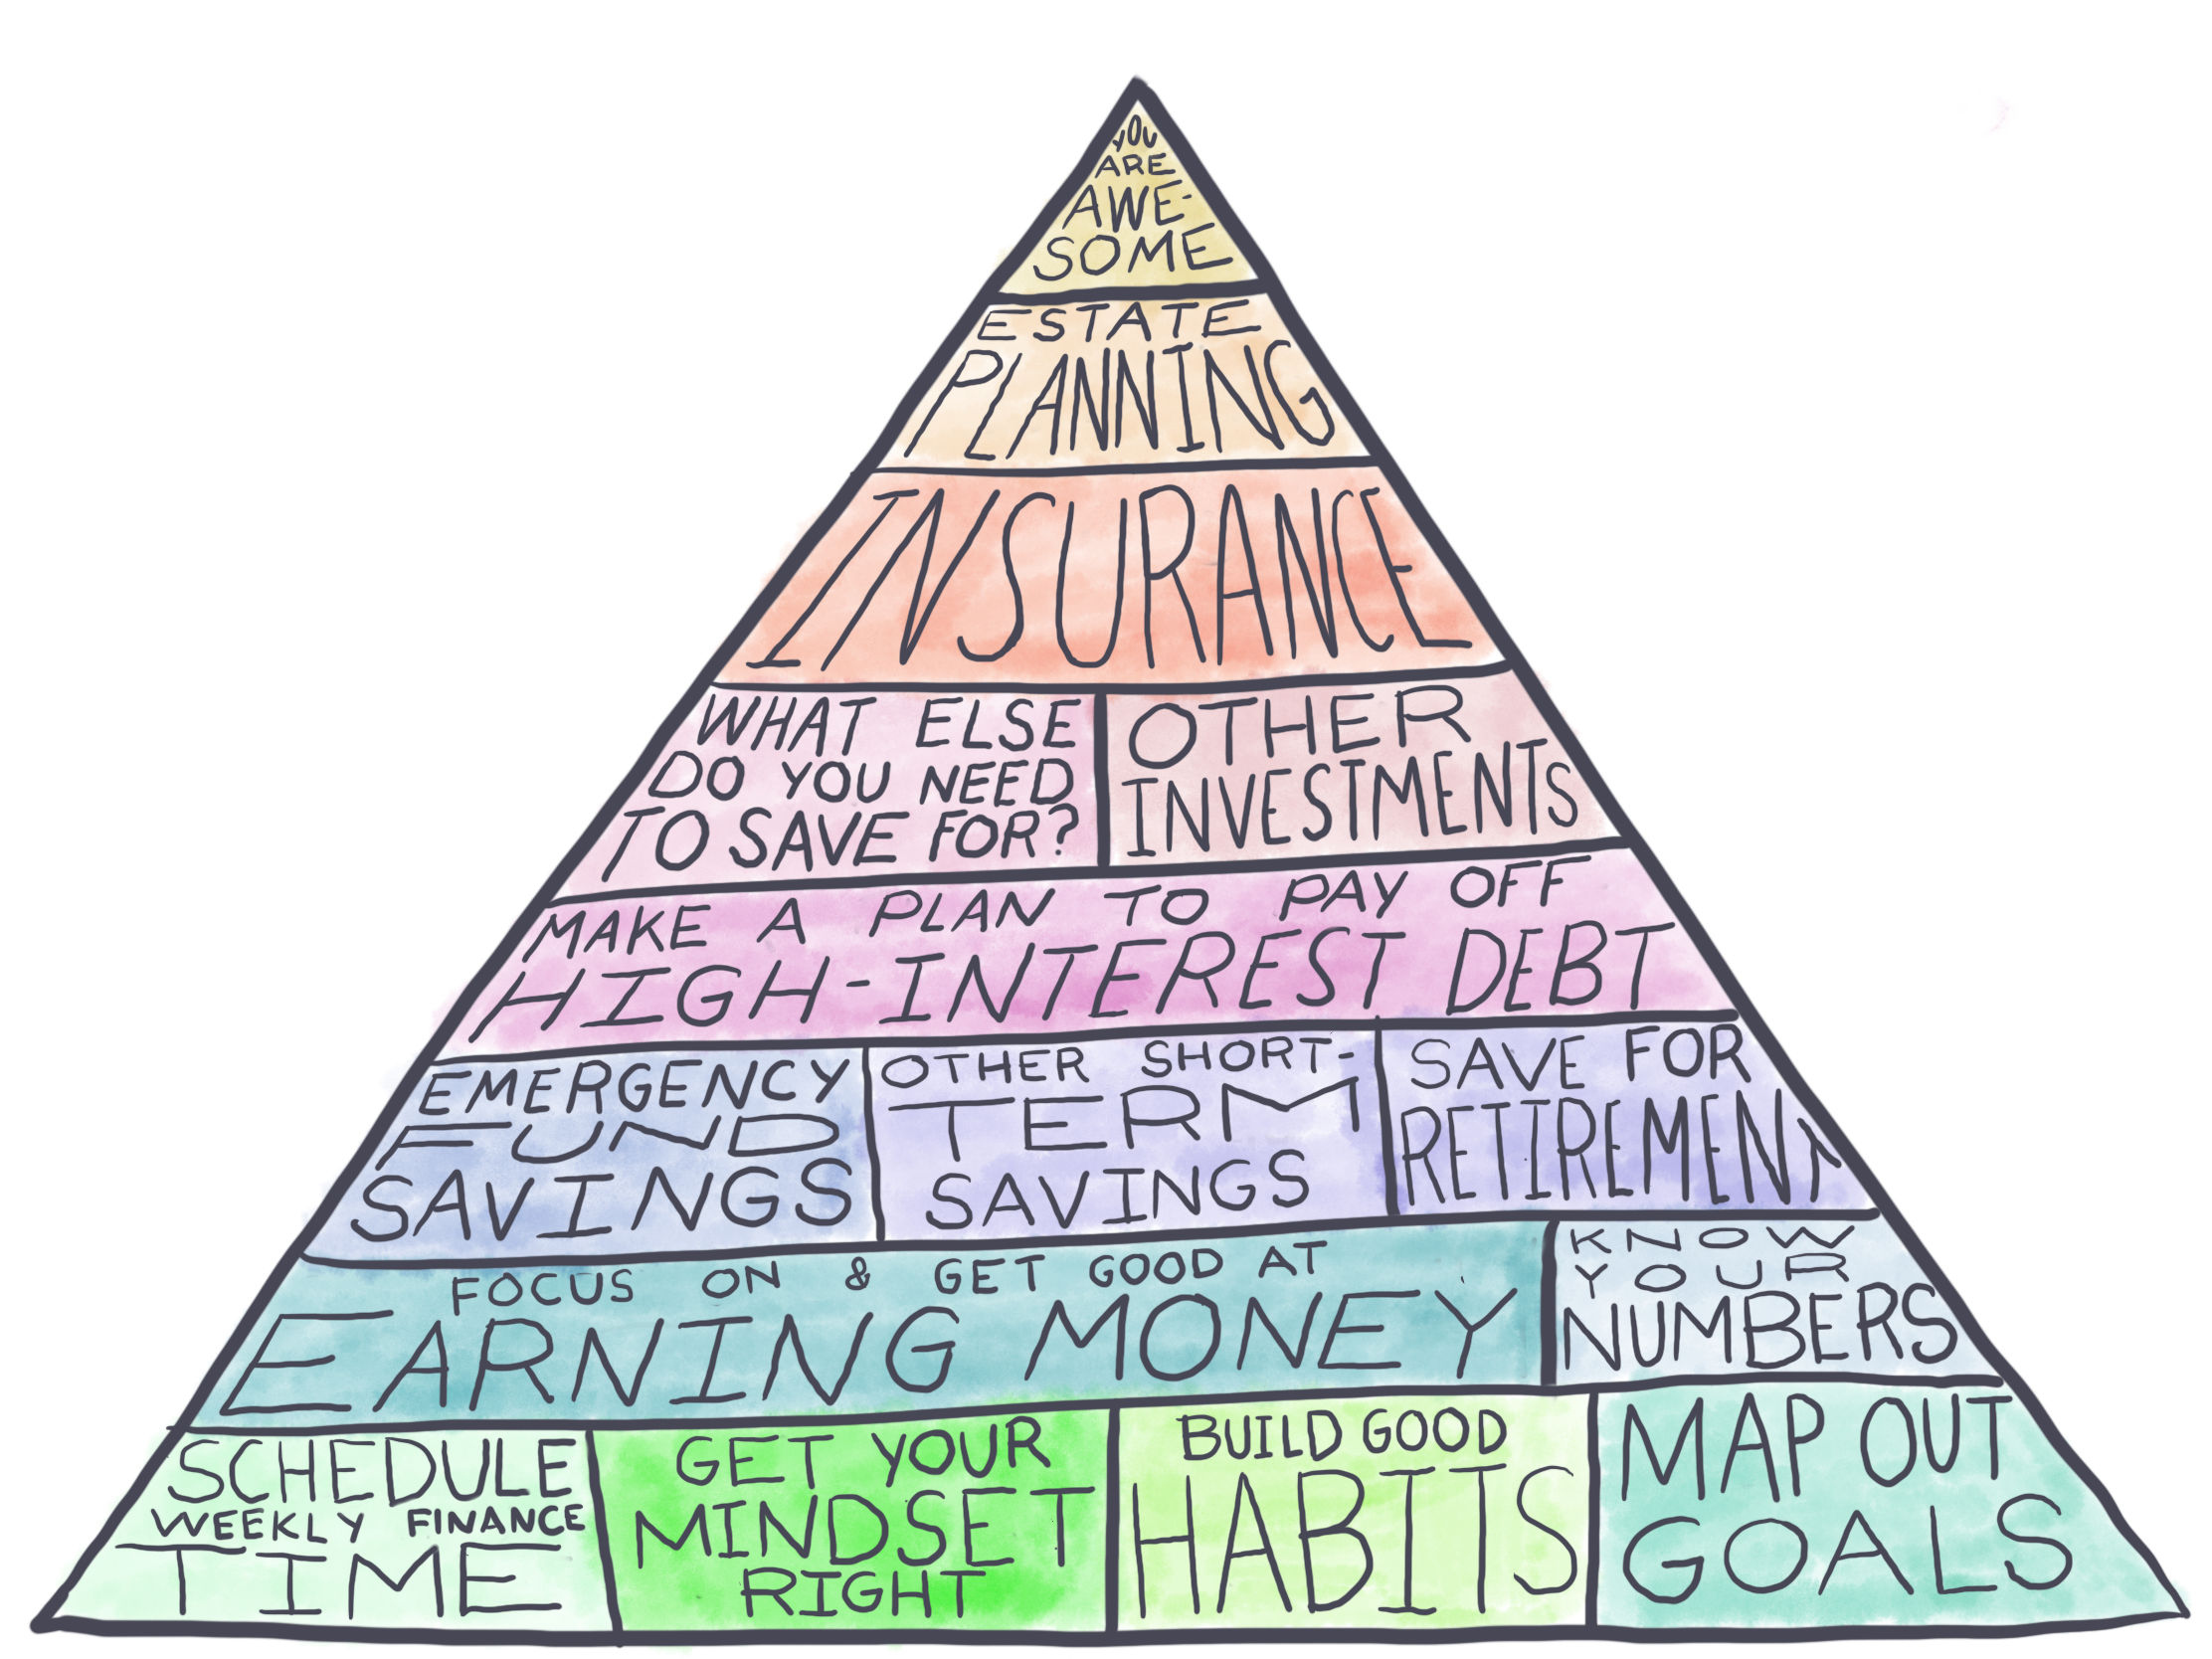 The Pyramid of Financial Awesomeness TRANSPARENT.png